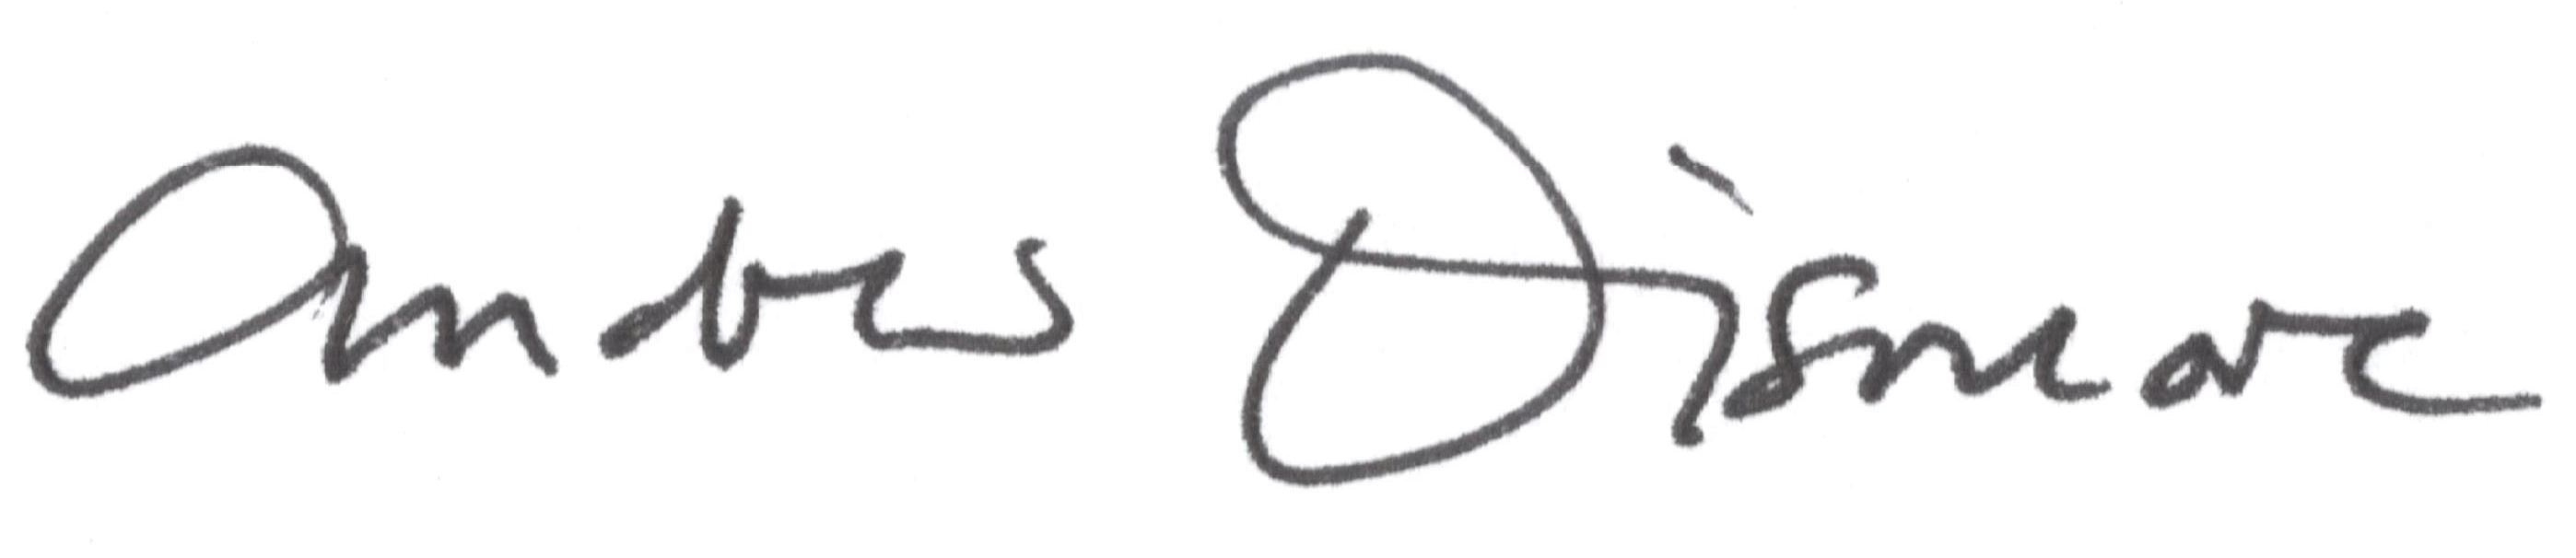 AD_Signature_(For_Use).jpg